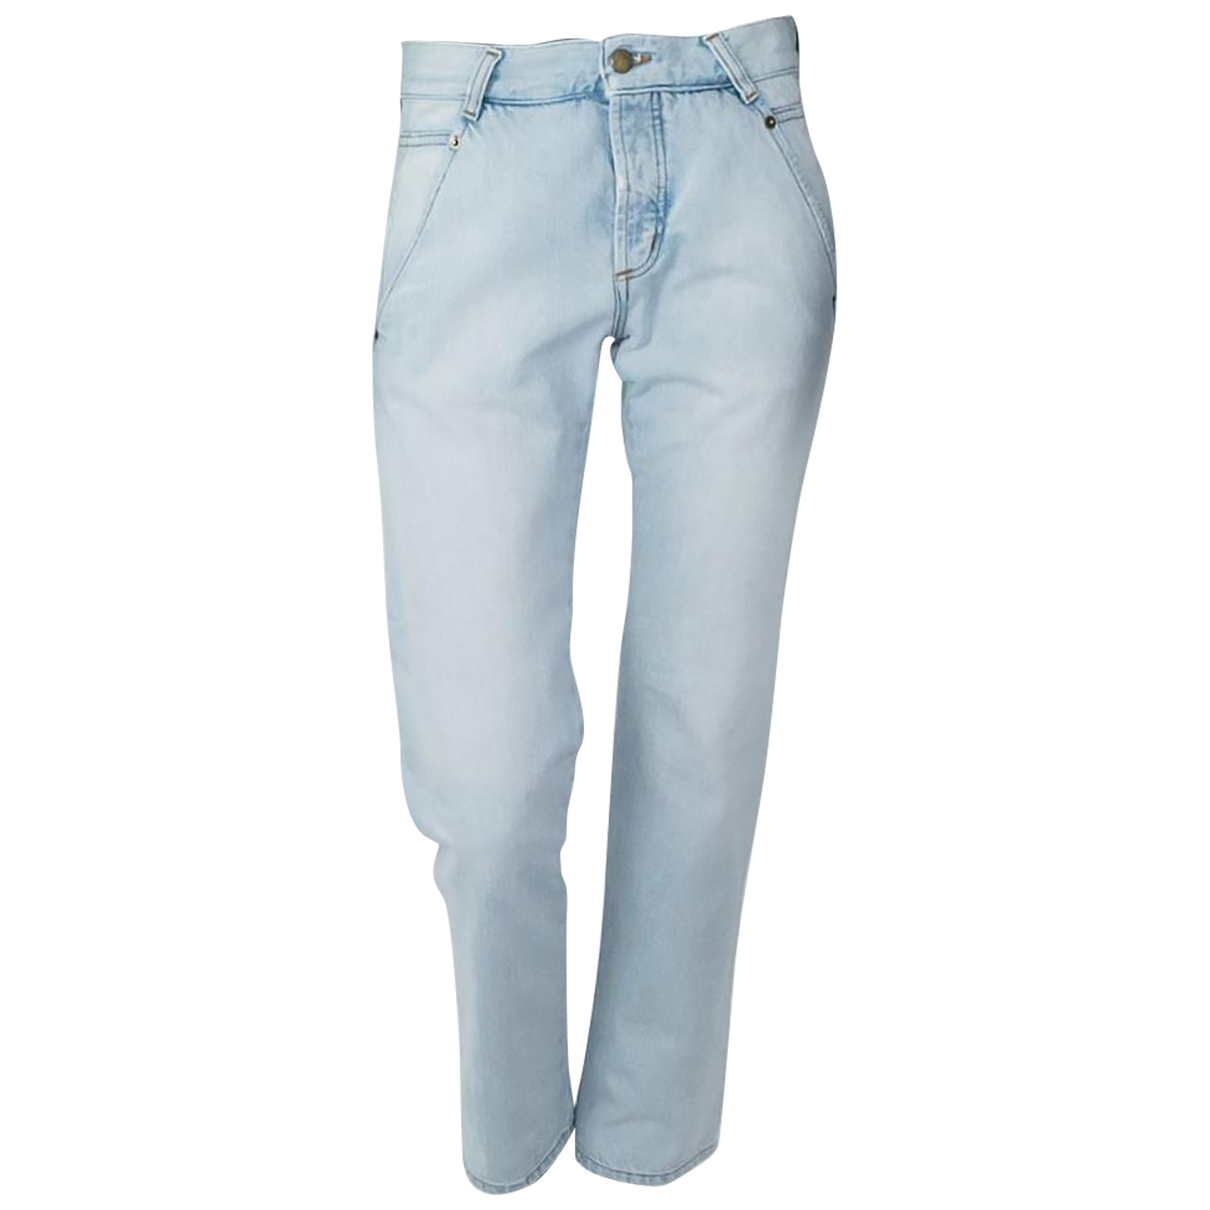 Alexander Mcqueen N Blue Cotton Jeans for Women 25 US